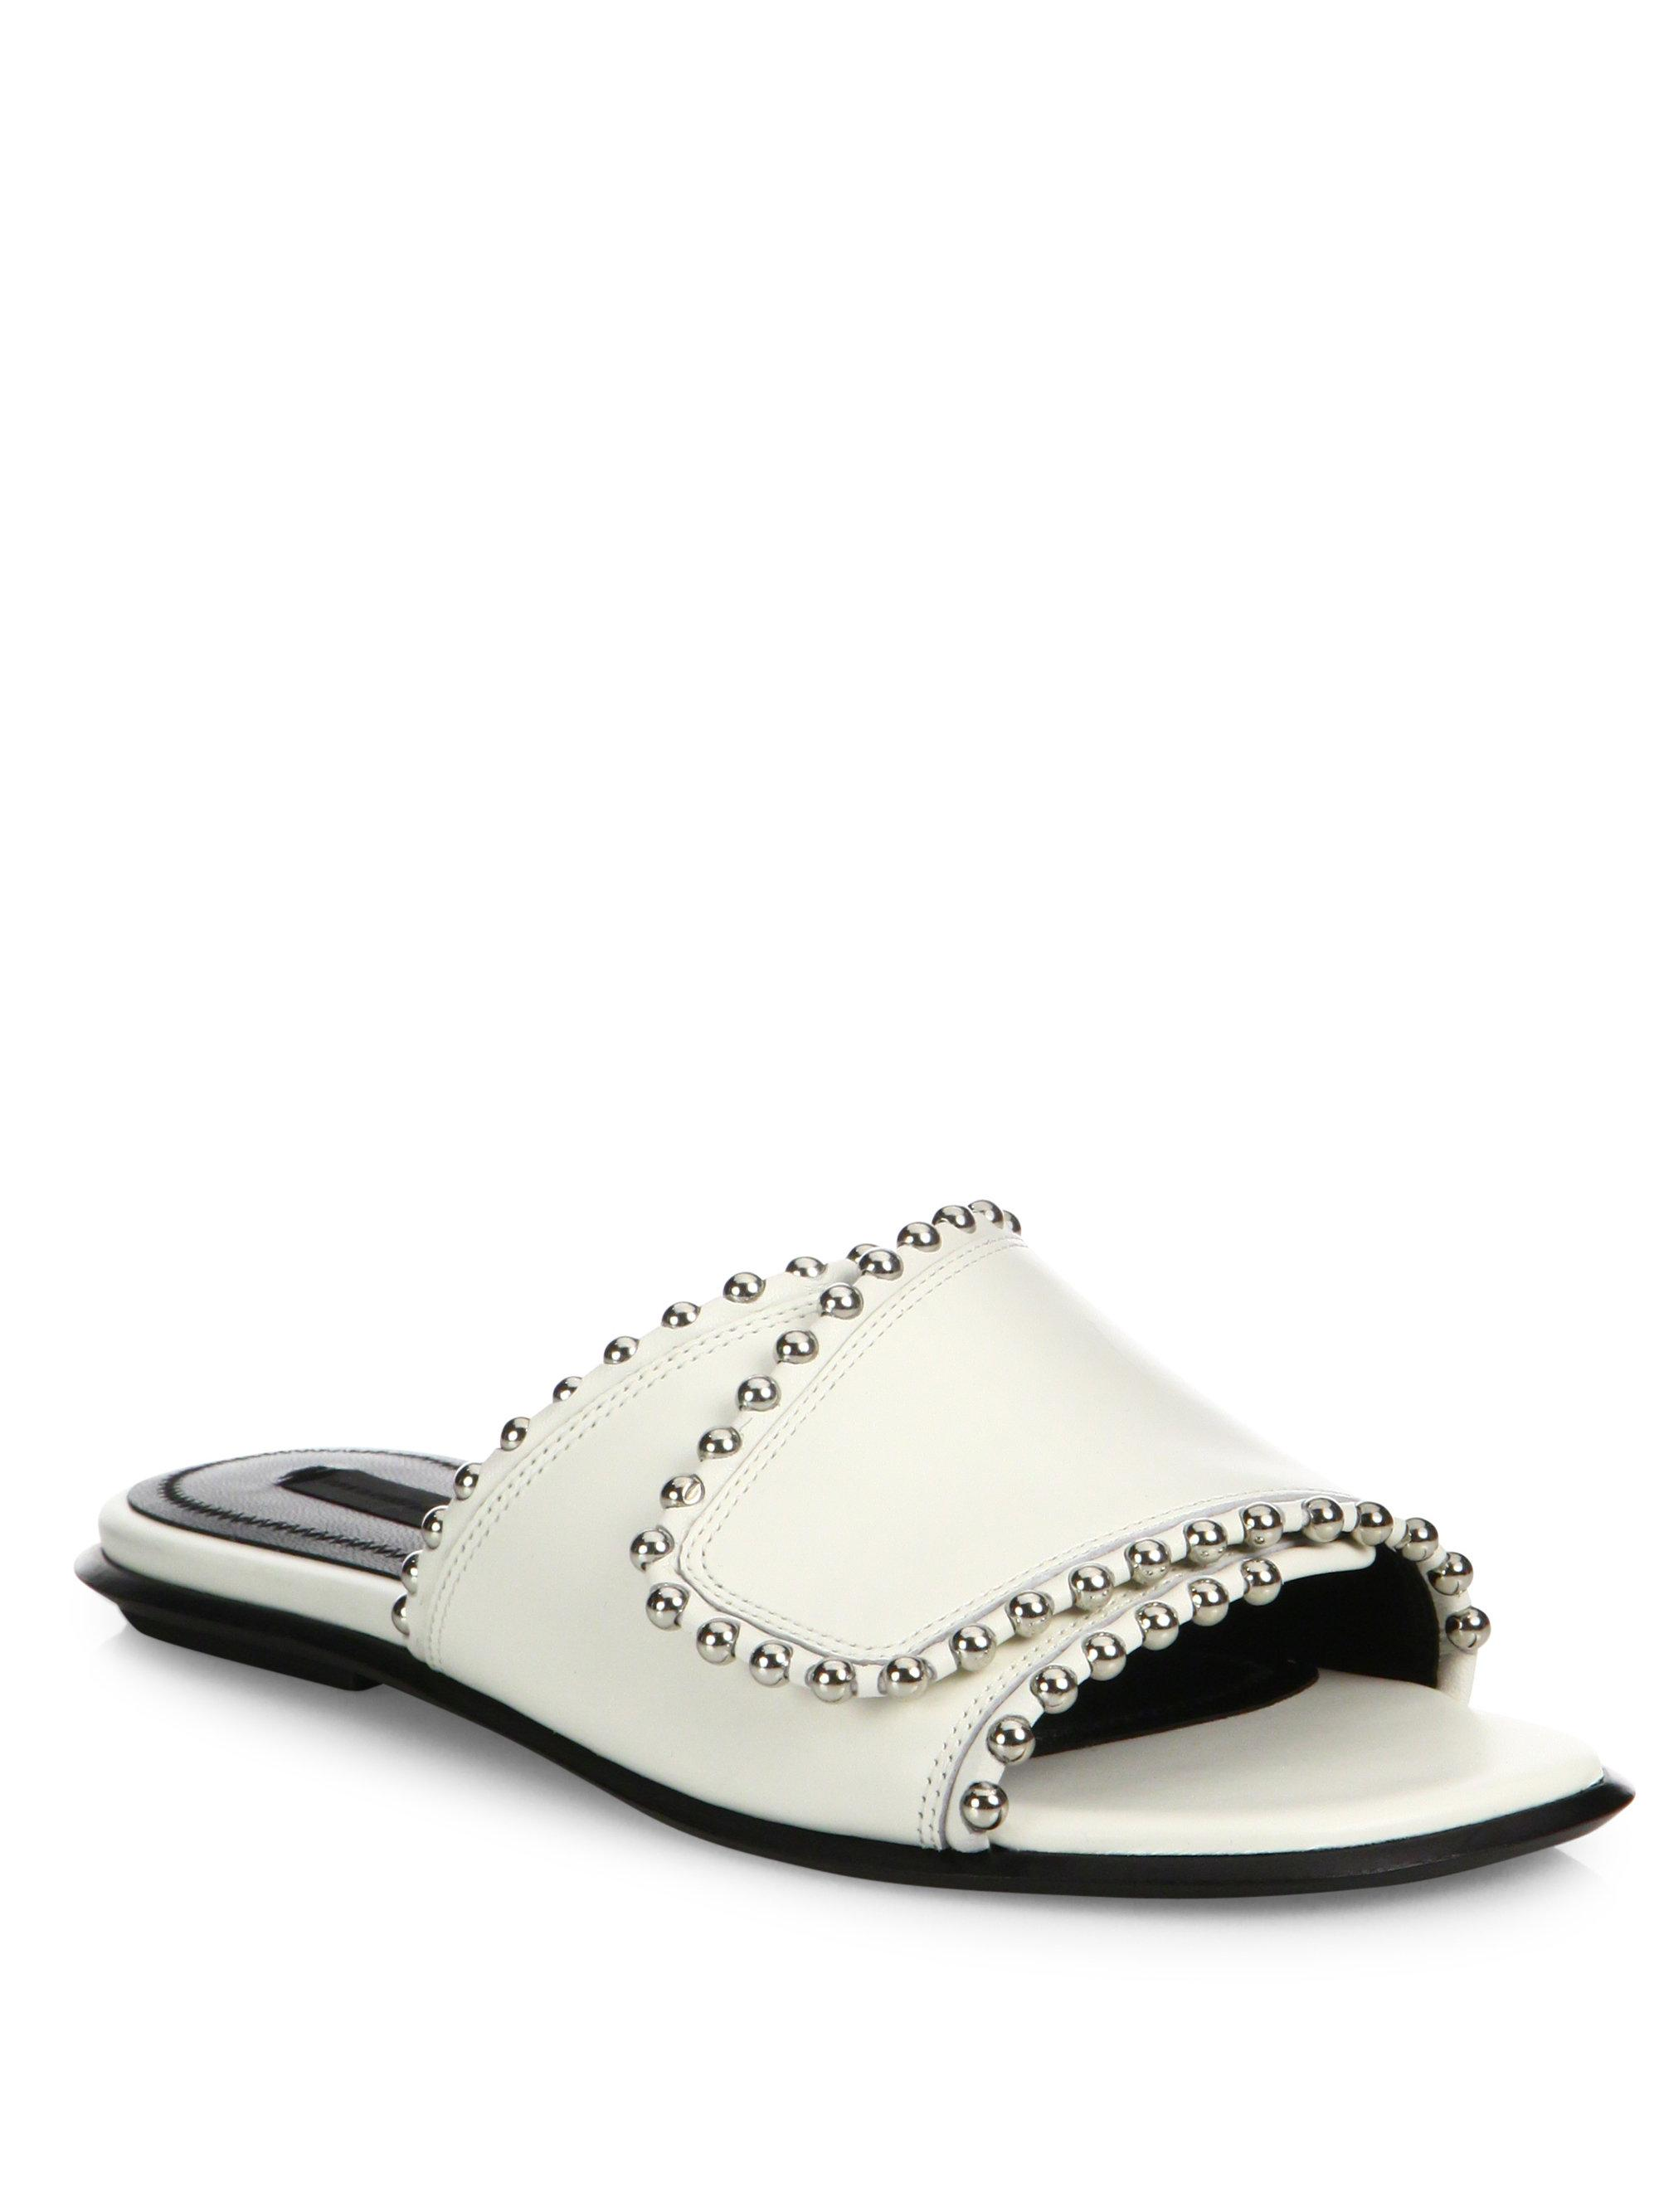 Alexander Wang. Women's White Leidy Studded Leather Slides